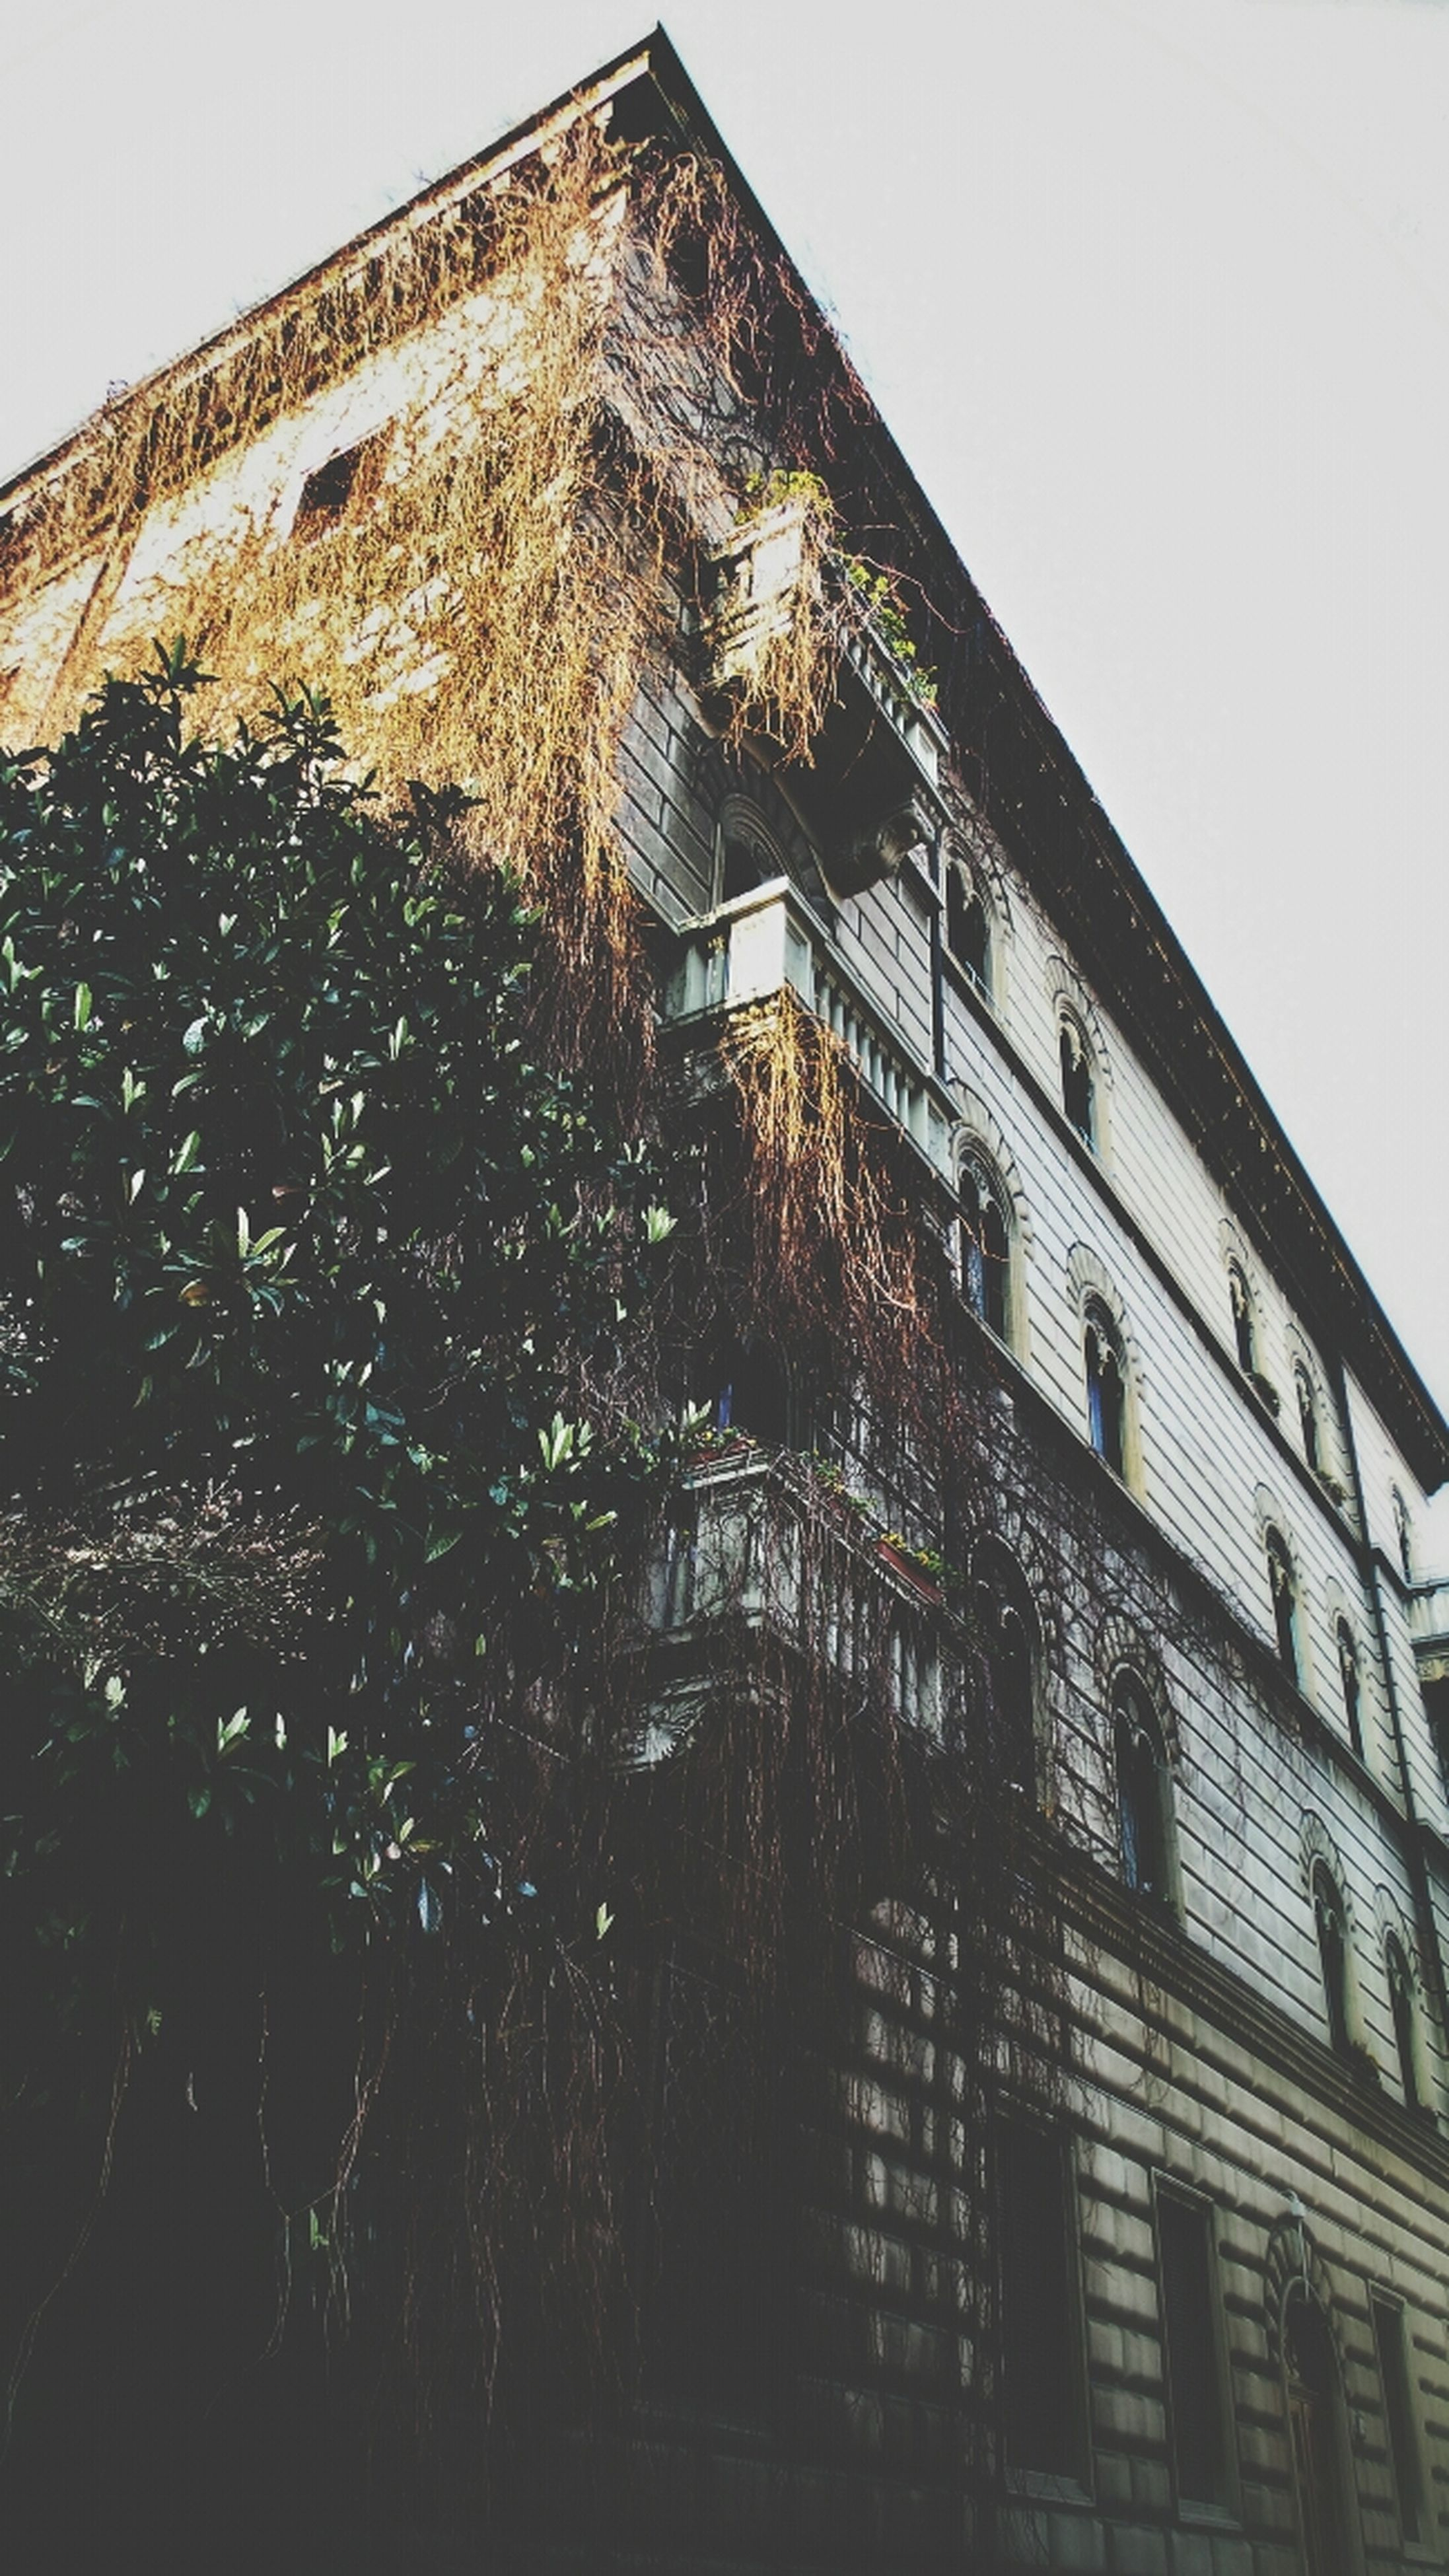 building exterior, architecture, built structure, low angle view, window, clear sky, building, residential building, residential structure, city, sky, house, outdoors, day, no people, tree, brick wall, exterior, sunlight, glass - material